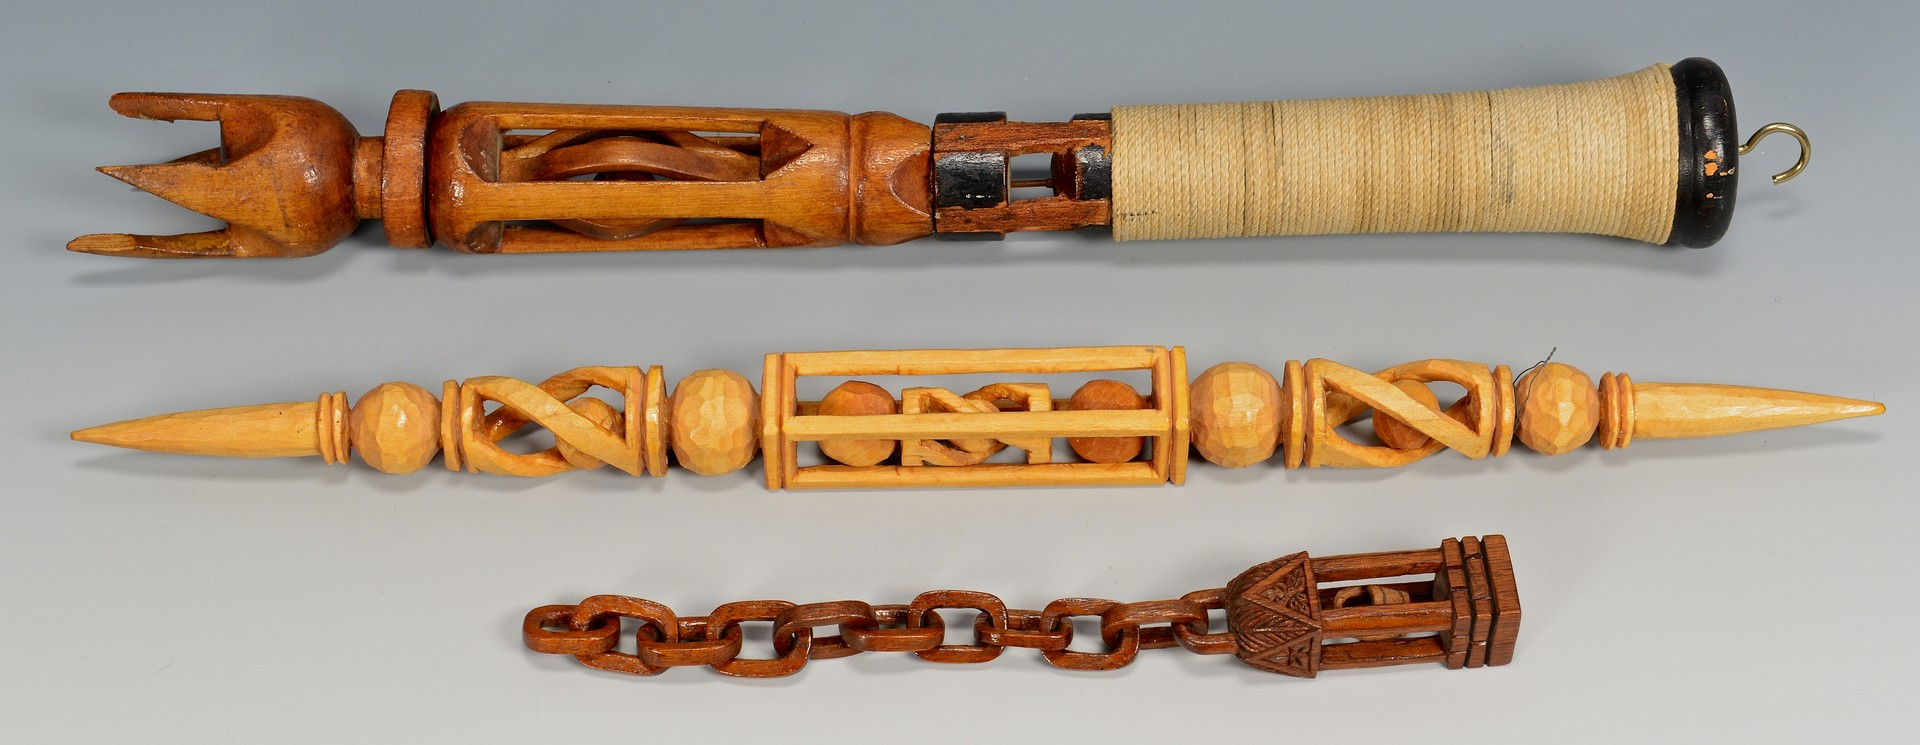 Lot 815: 6 Carved Folk Art Items, Canes & Chains